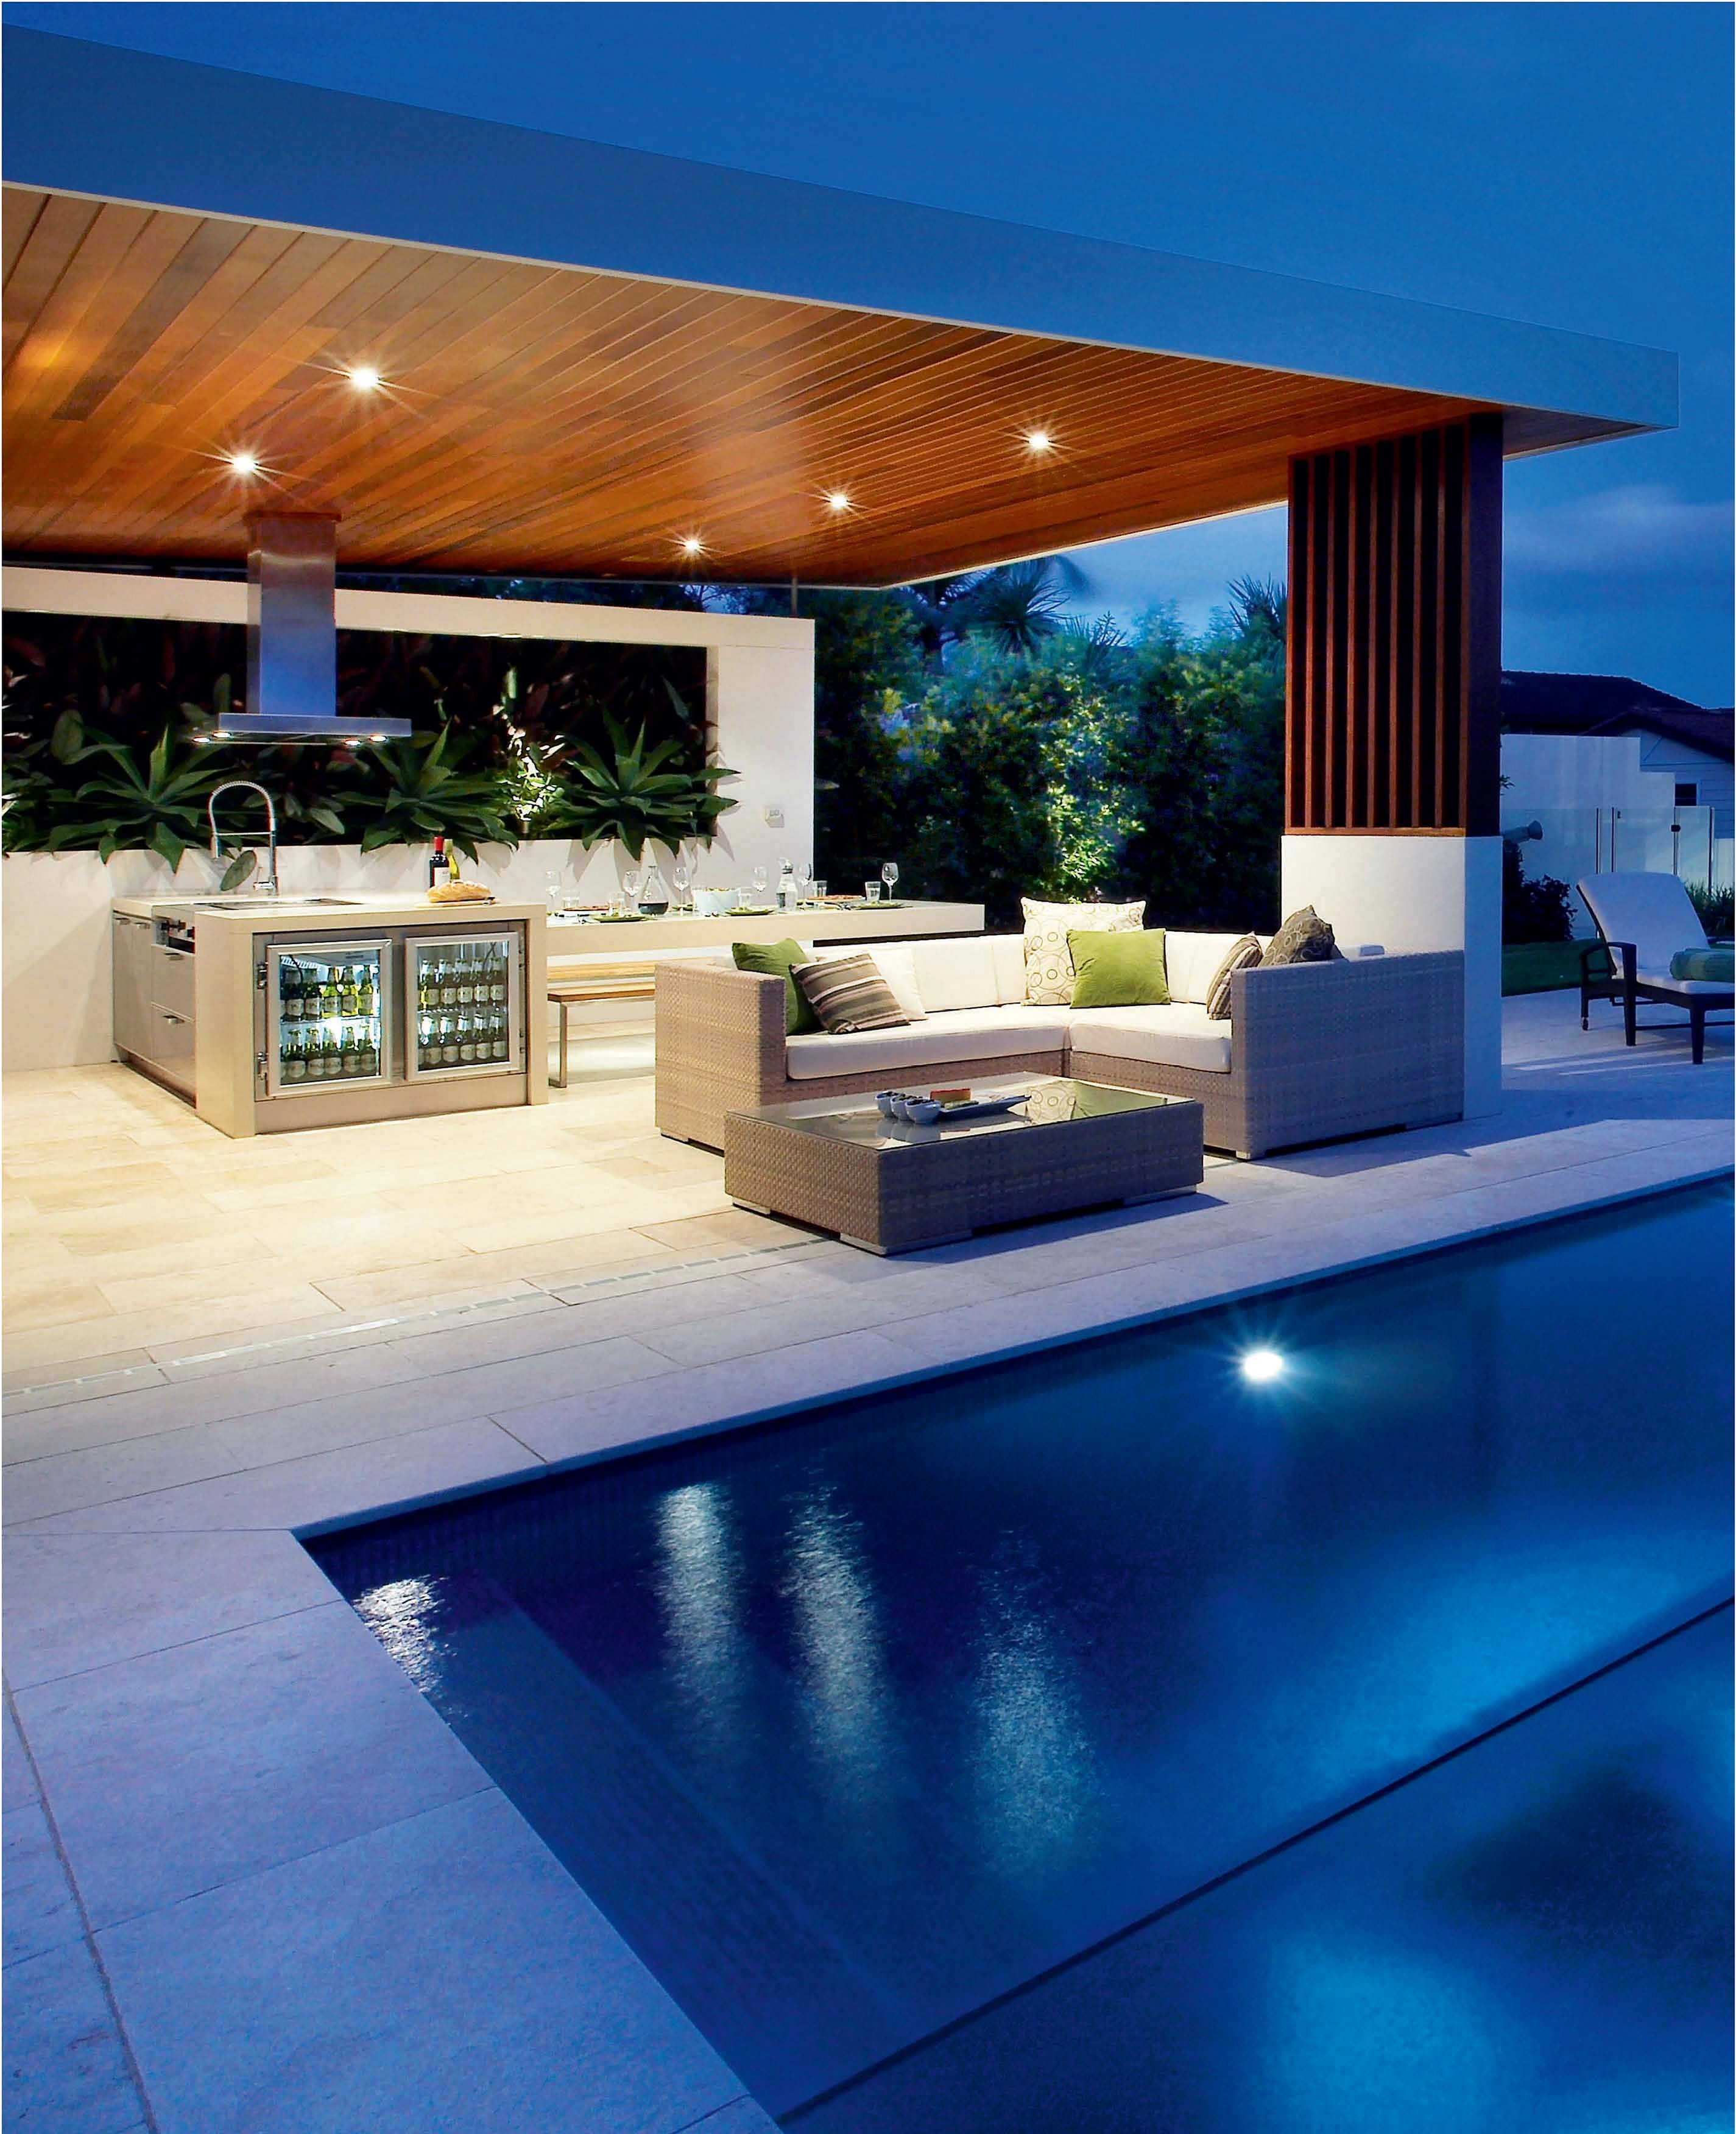 42 awesome outdoor living design ideas on a budget freshouz com modern outdoor kitchen on outdoor kitchen ideas on a budget id=77406